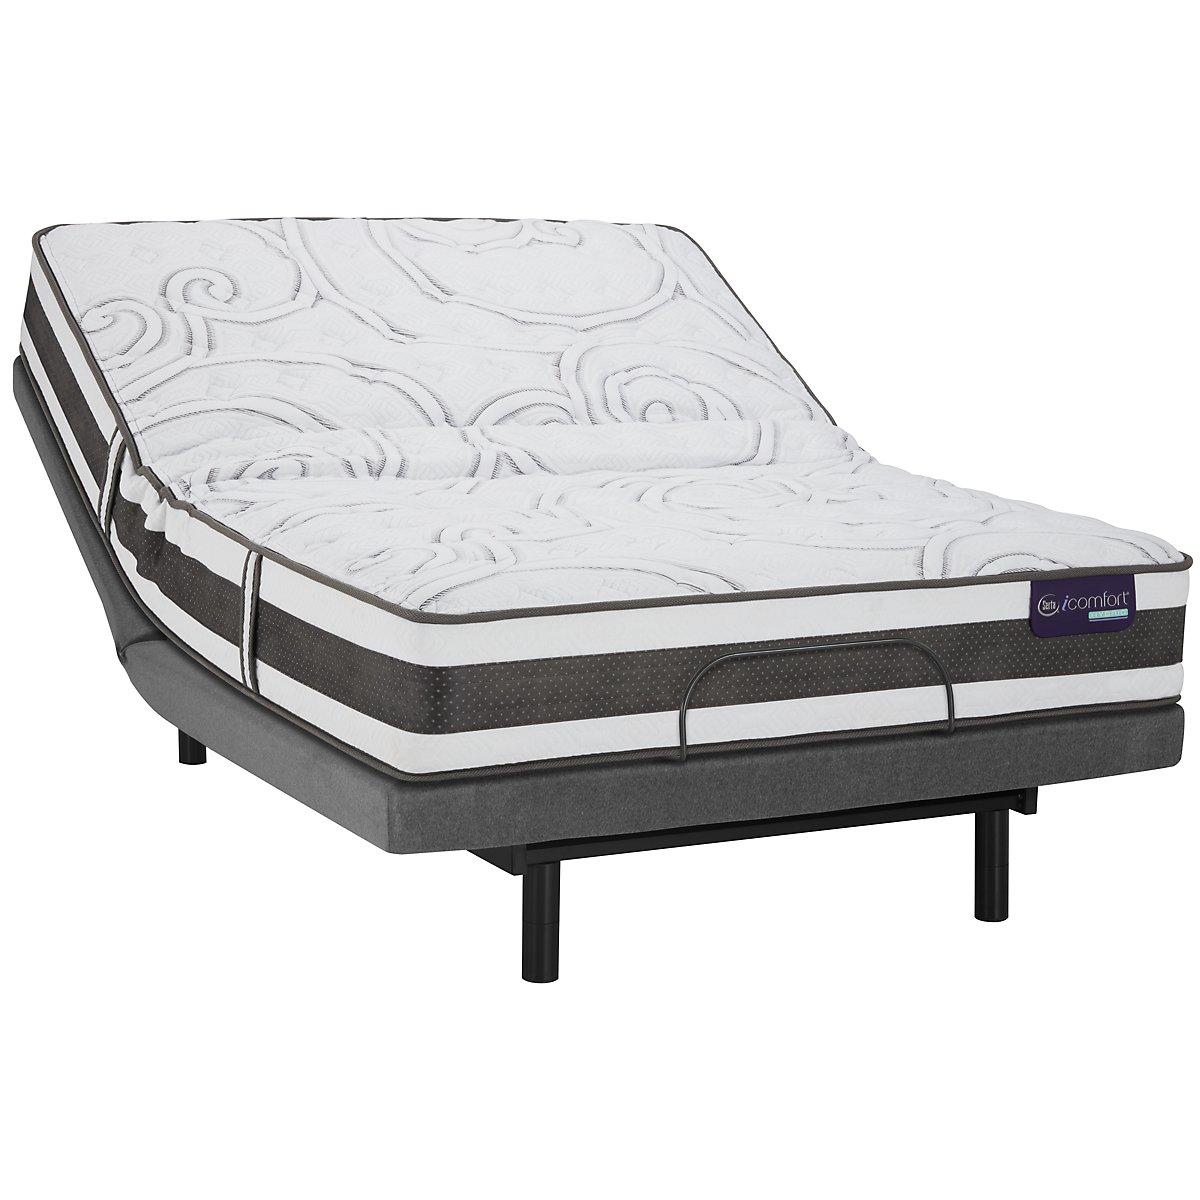 City Furniture Serta Icomfort Applause2 Firm Hybrid Deluxe Adjustable Mattress Set